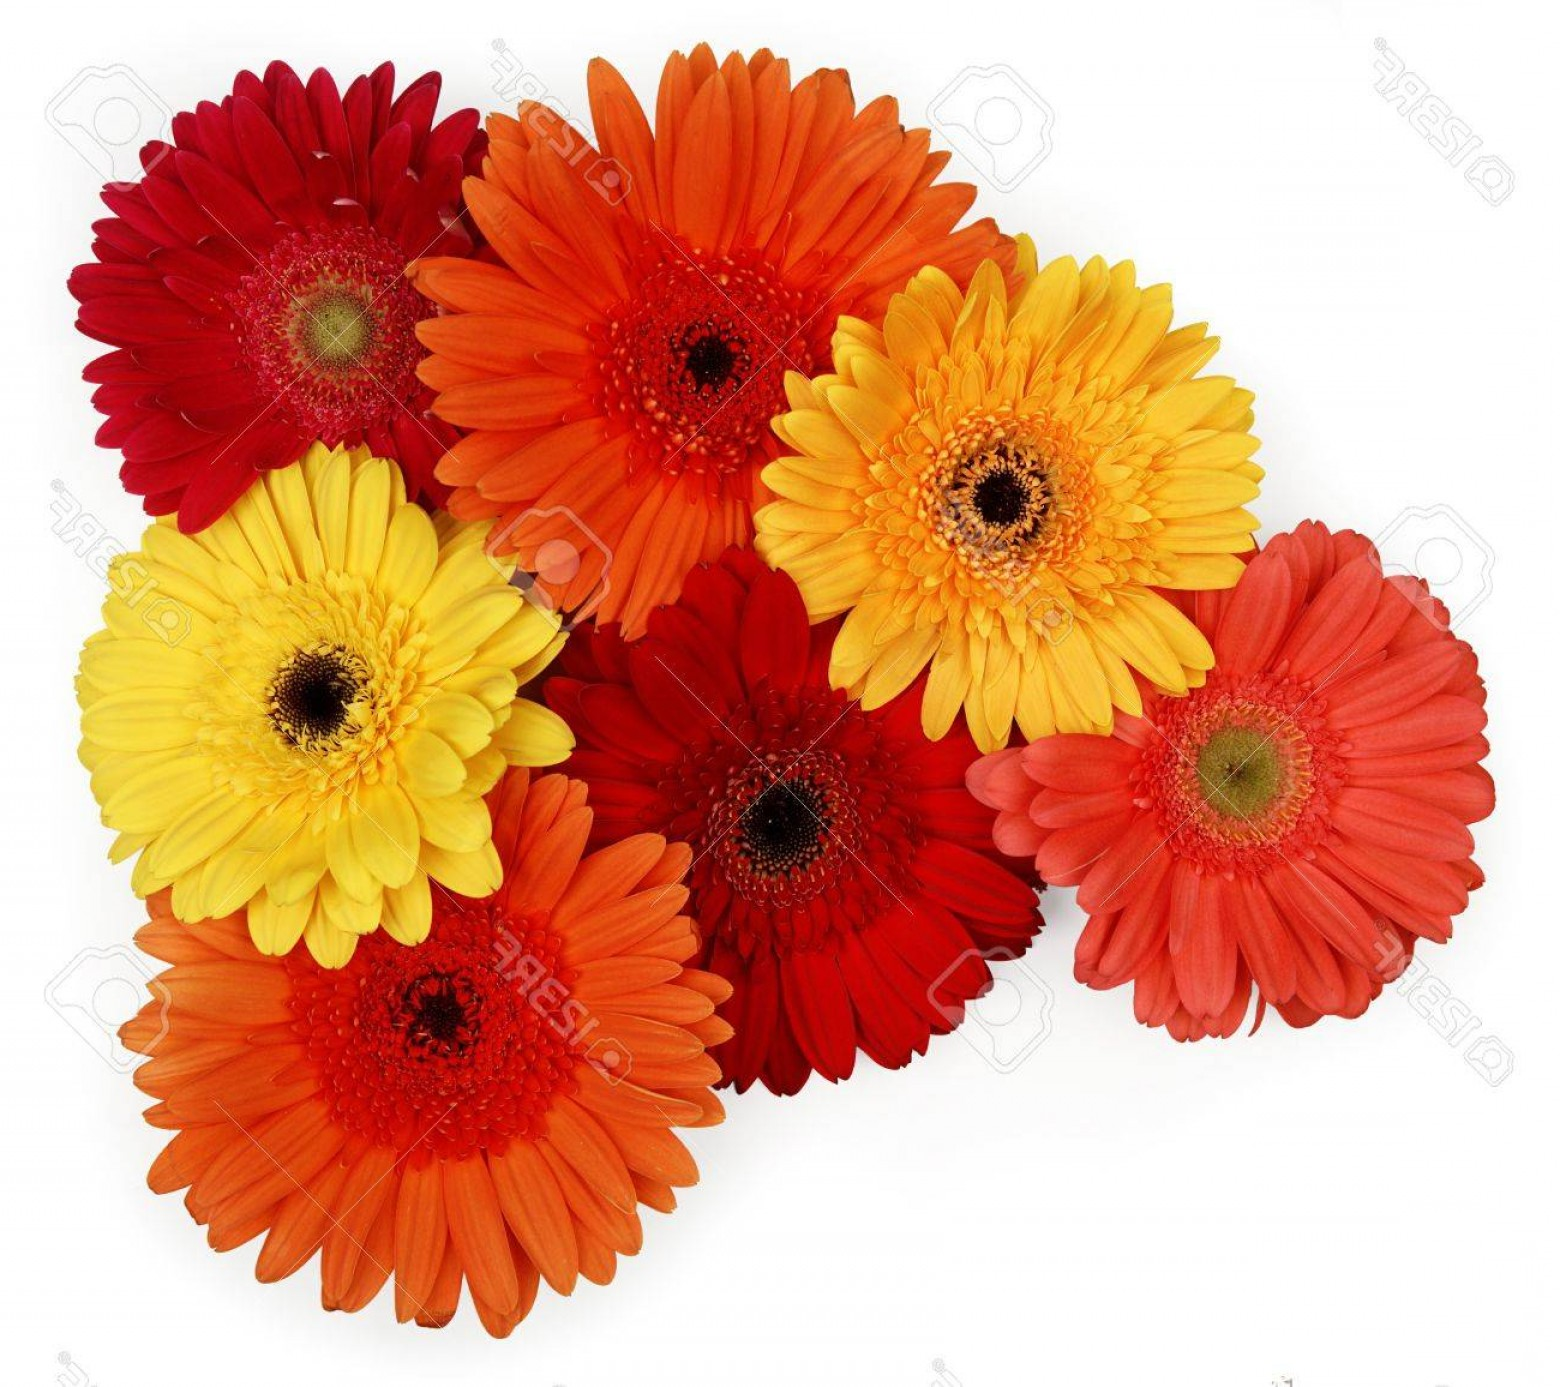 Orange Gerber Daisy Vector: Chic Photoyellow Red And Orange Gerber Daisies On White